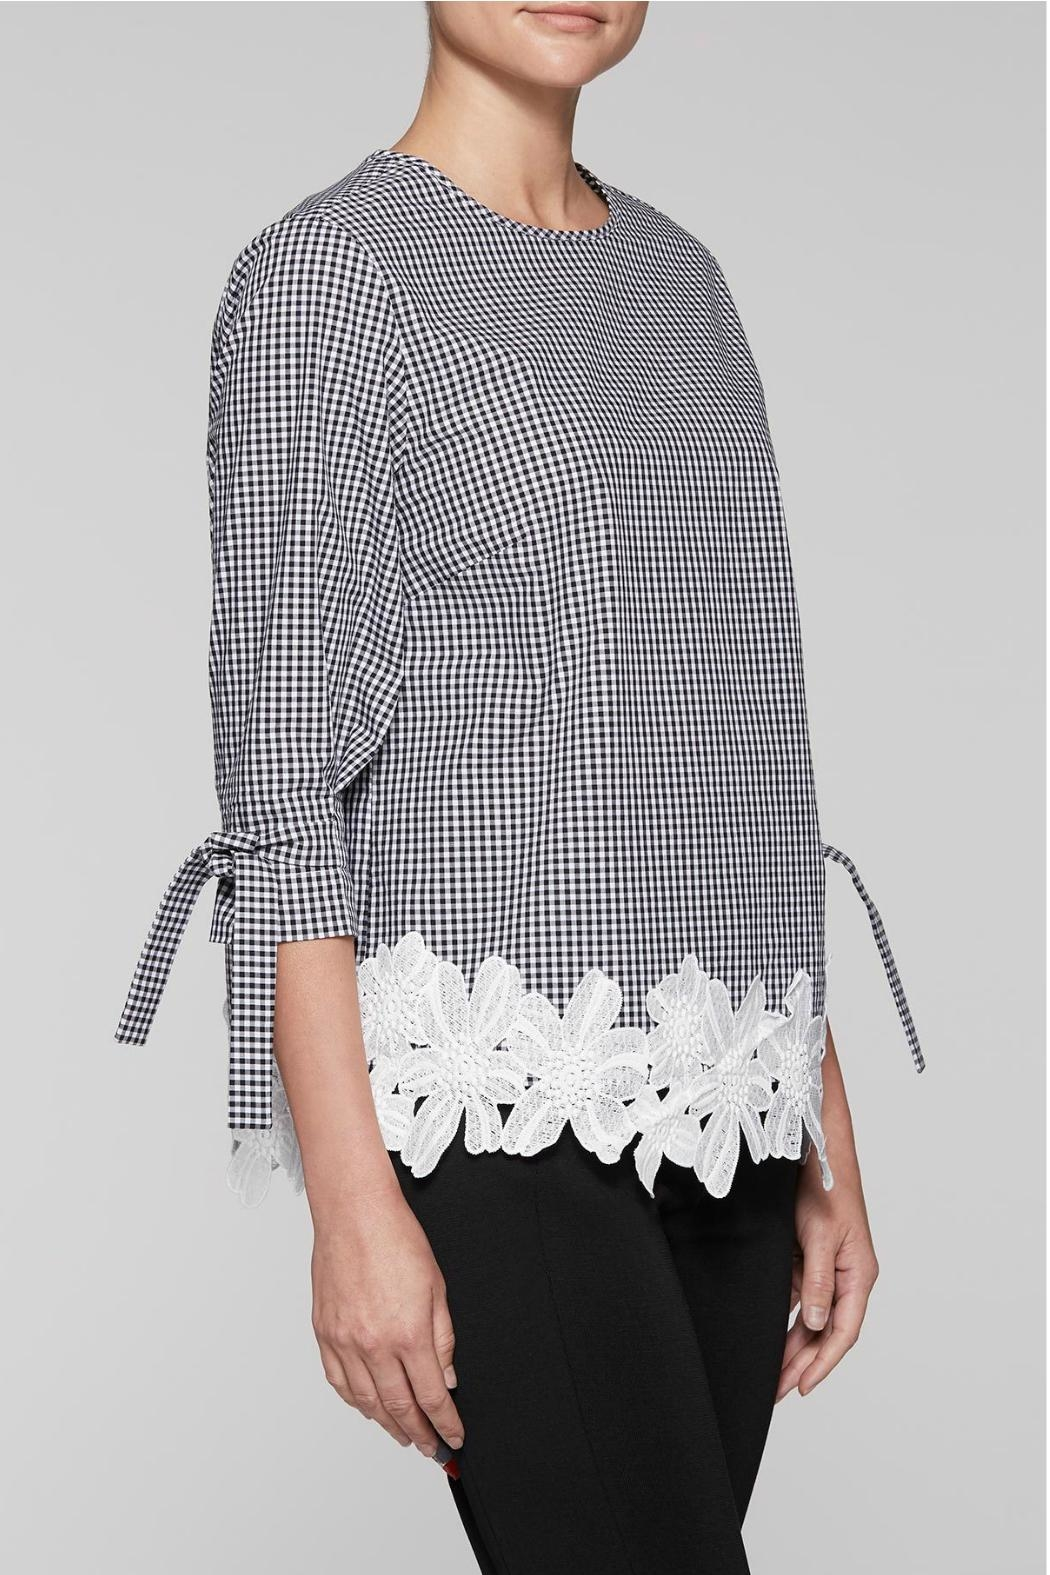 Ming Wang Gingham Check Blouse - Front Full Image